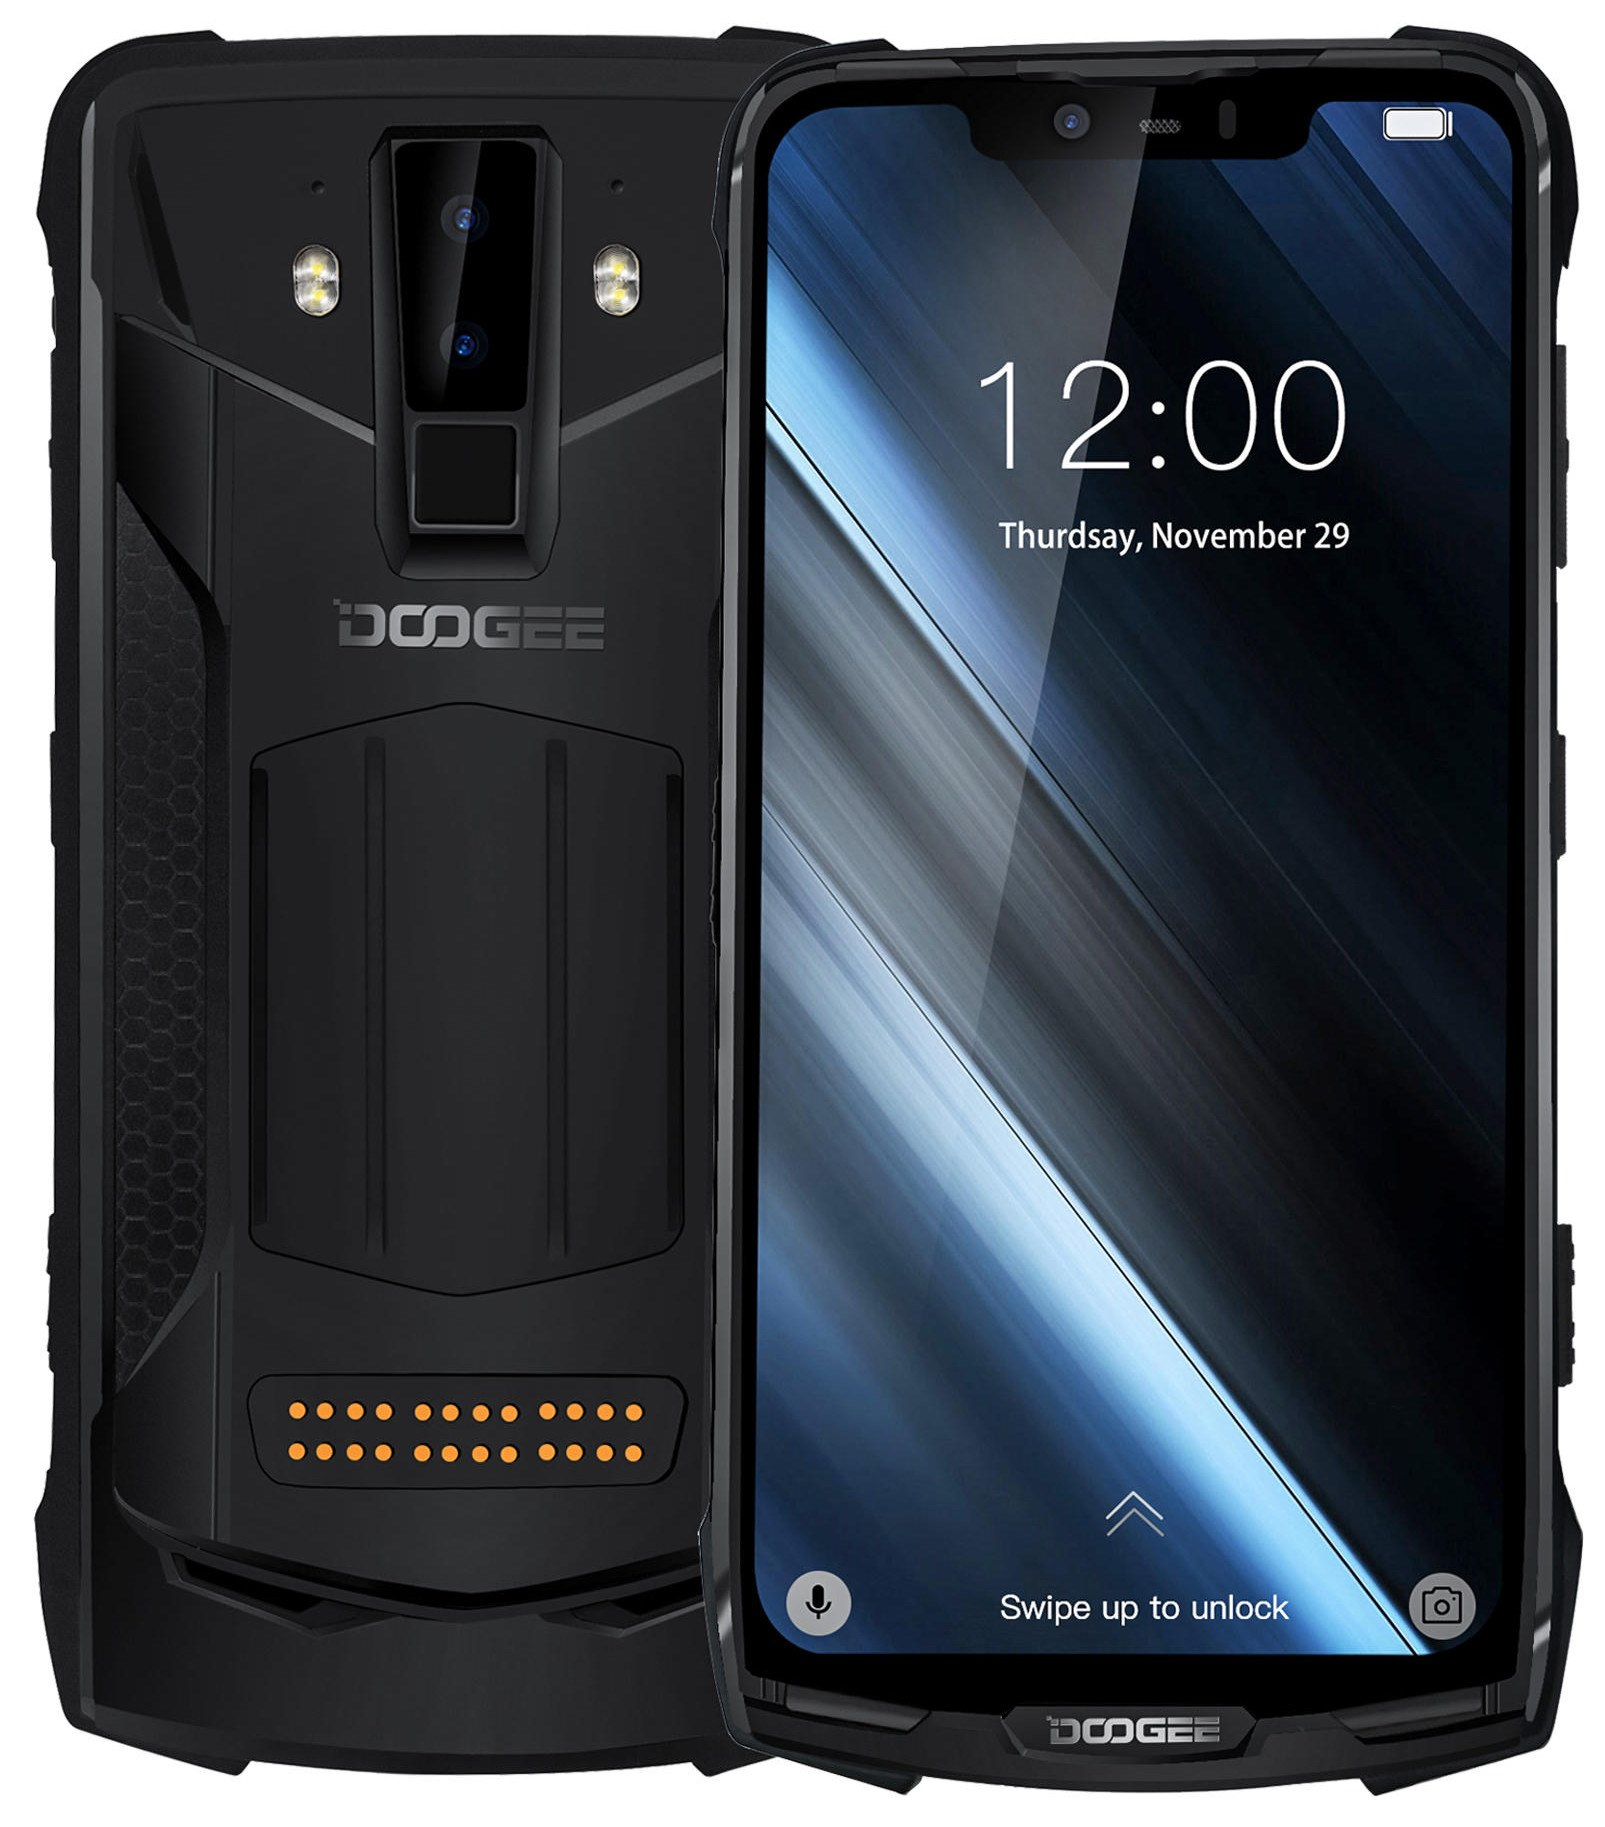 Doogee-S90-Super-bundle